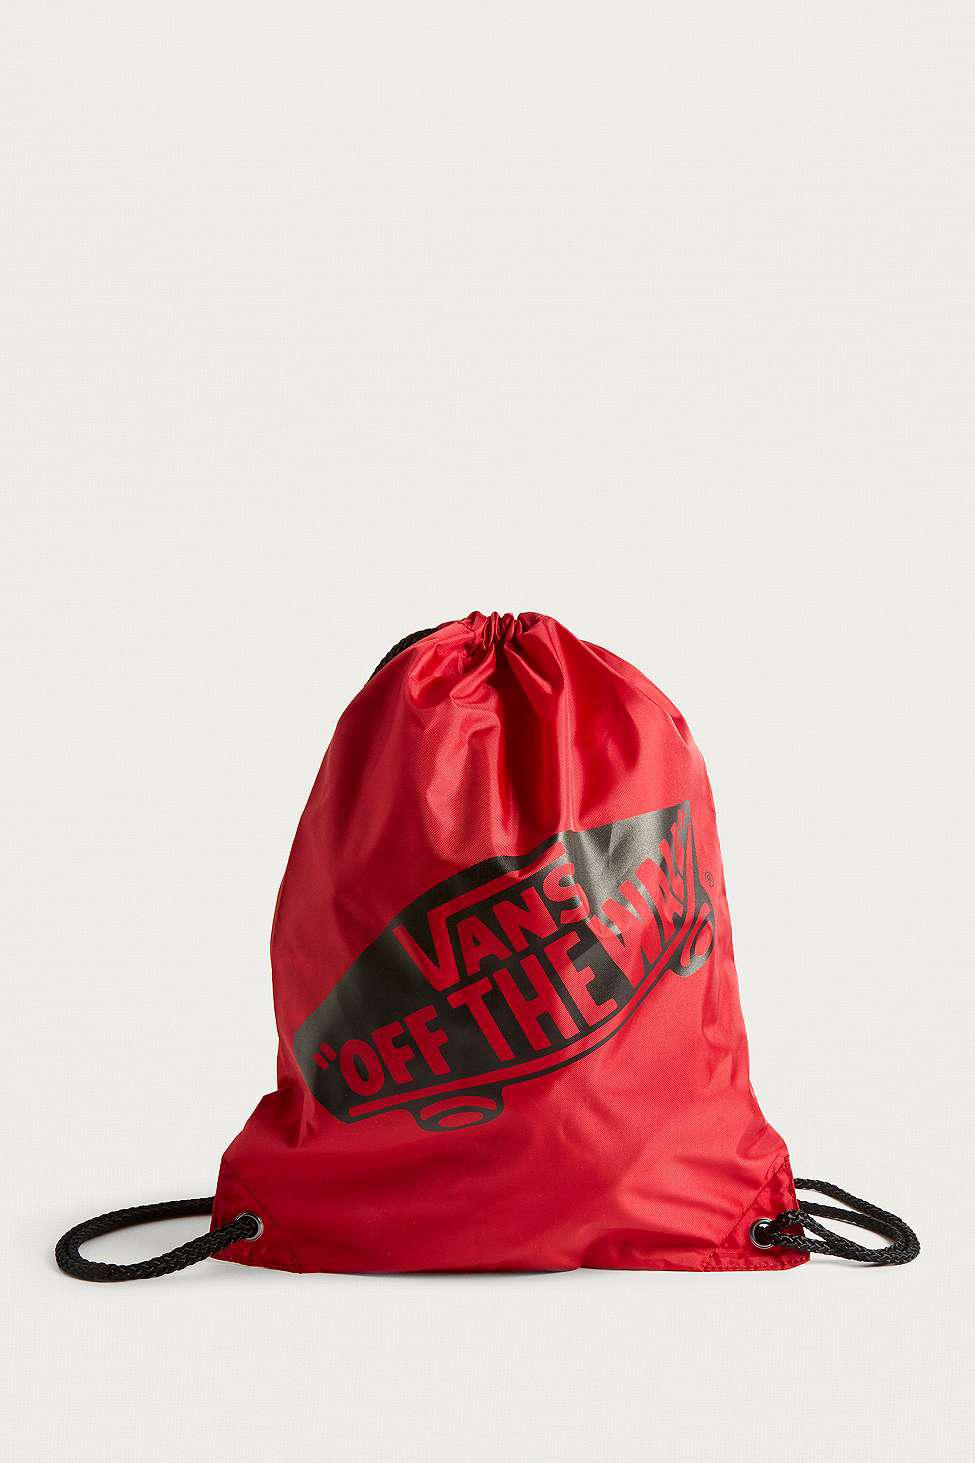 32d6d1b2b6 Vans Benched Drawstring Backpack - Womens All in Red - Lyst